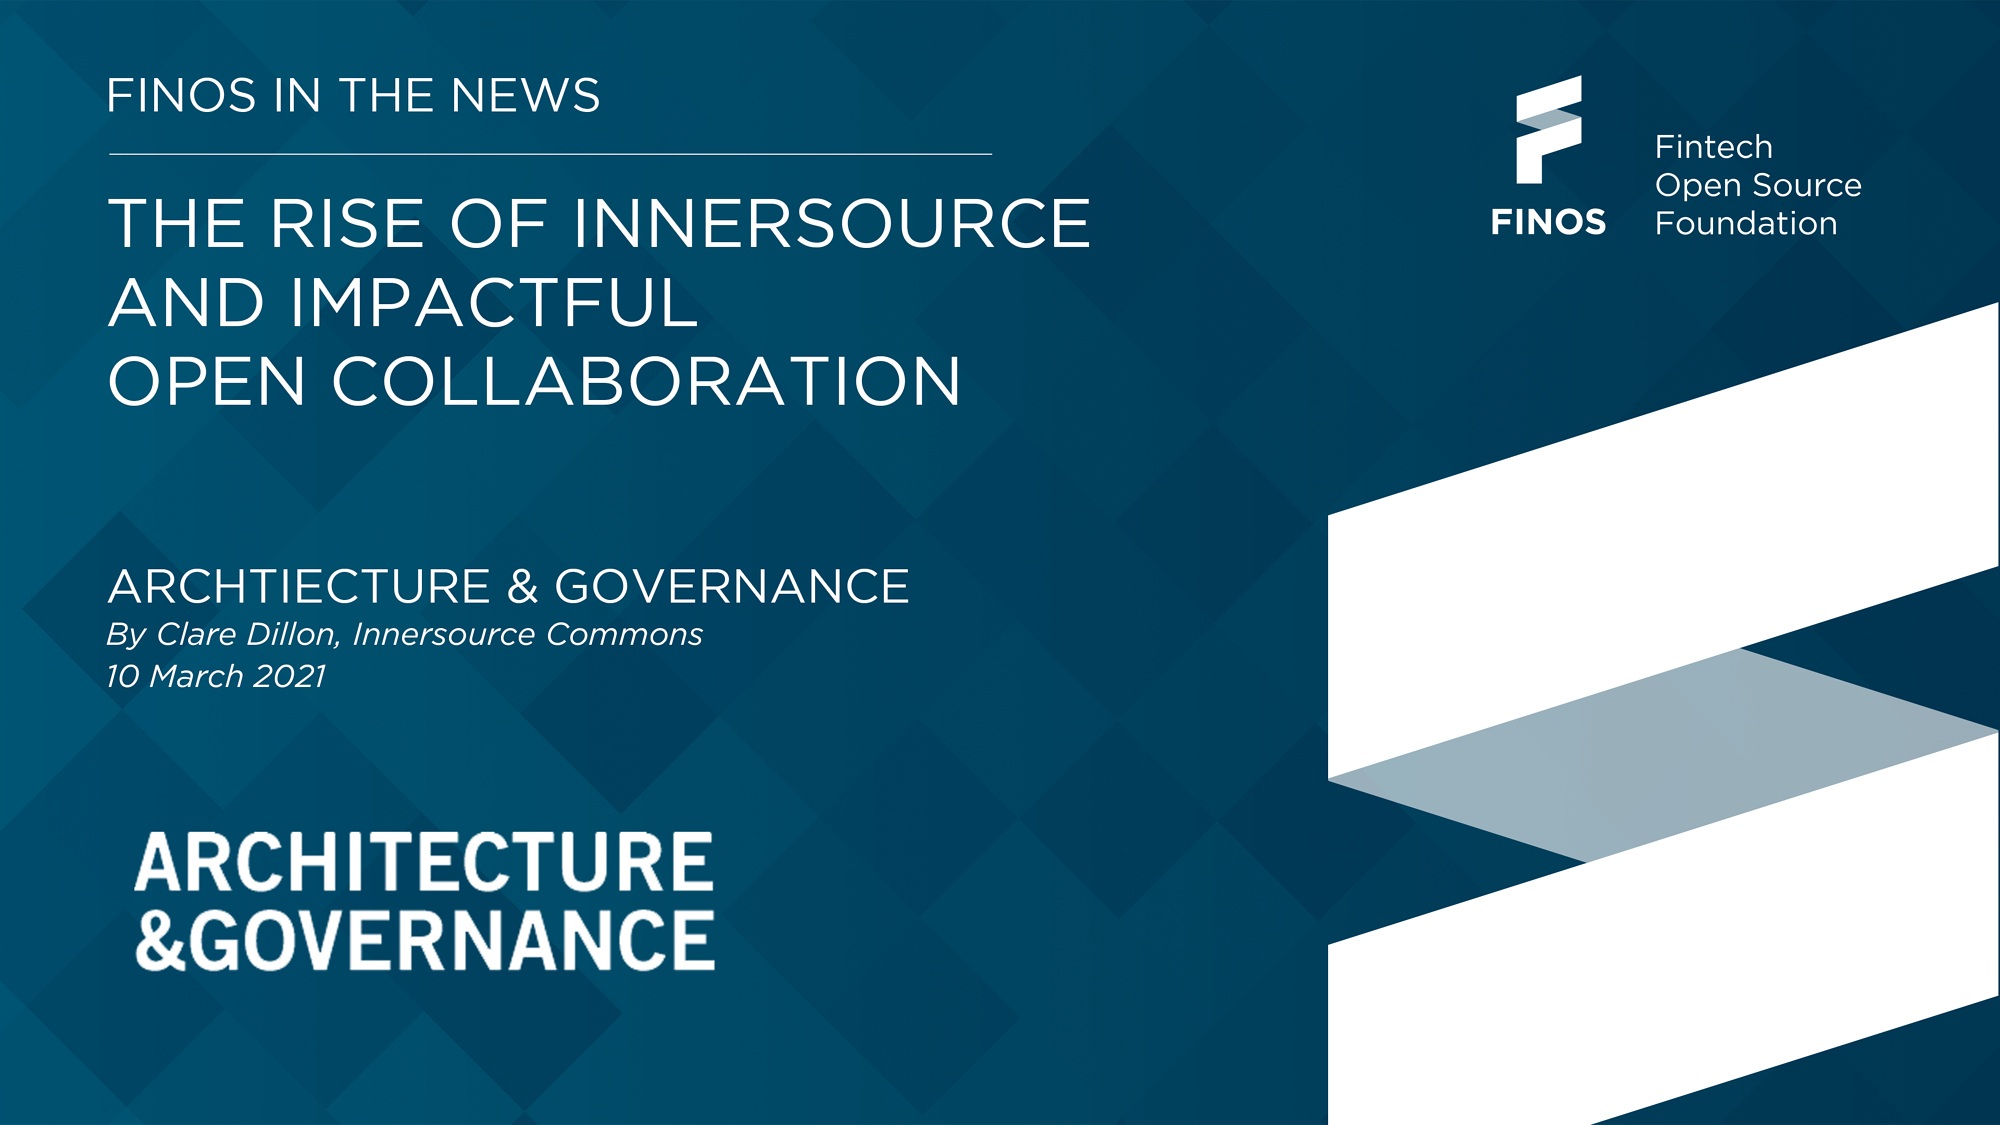 FINOS-in-the-news-rise-of-innersource-march21